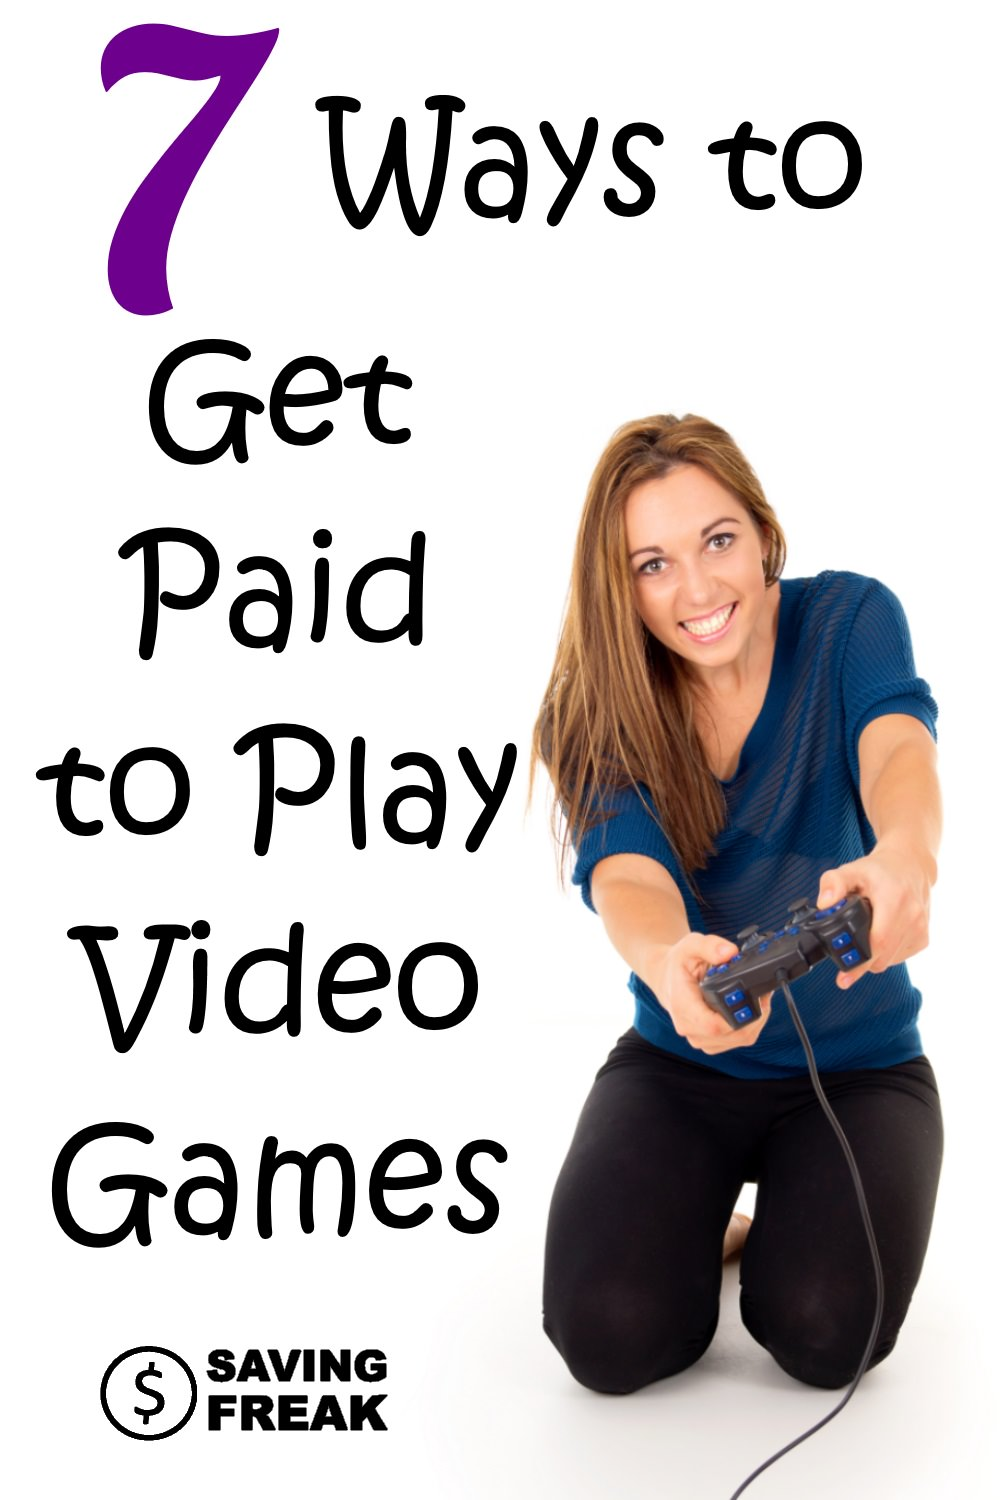 Getting paid to play video games is a gamers dream. While most people will not replace their salary, you can make some side cash by playing video games. This article has seven different ways to get paid for gaming.